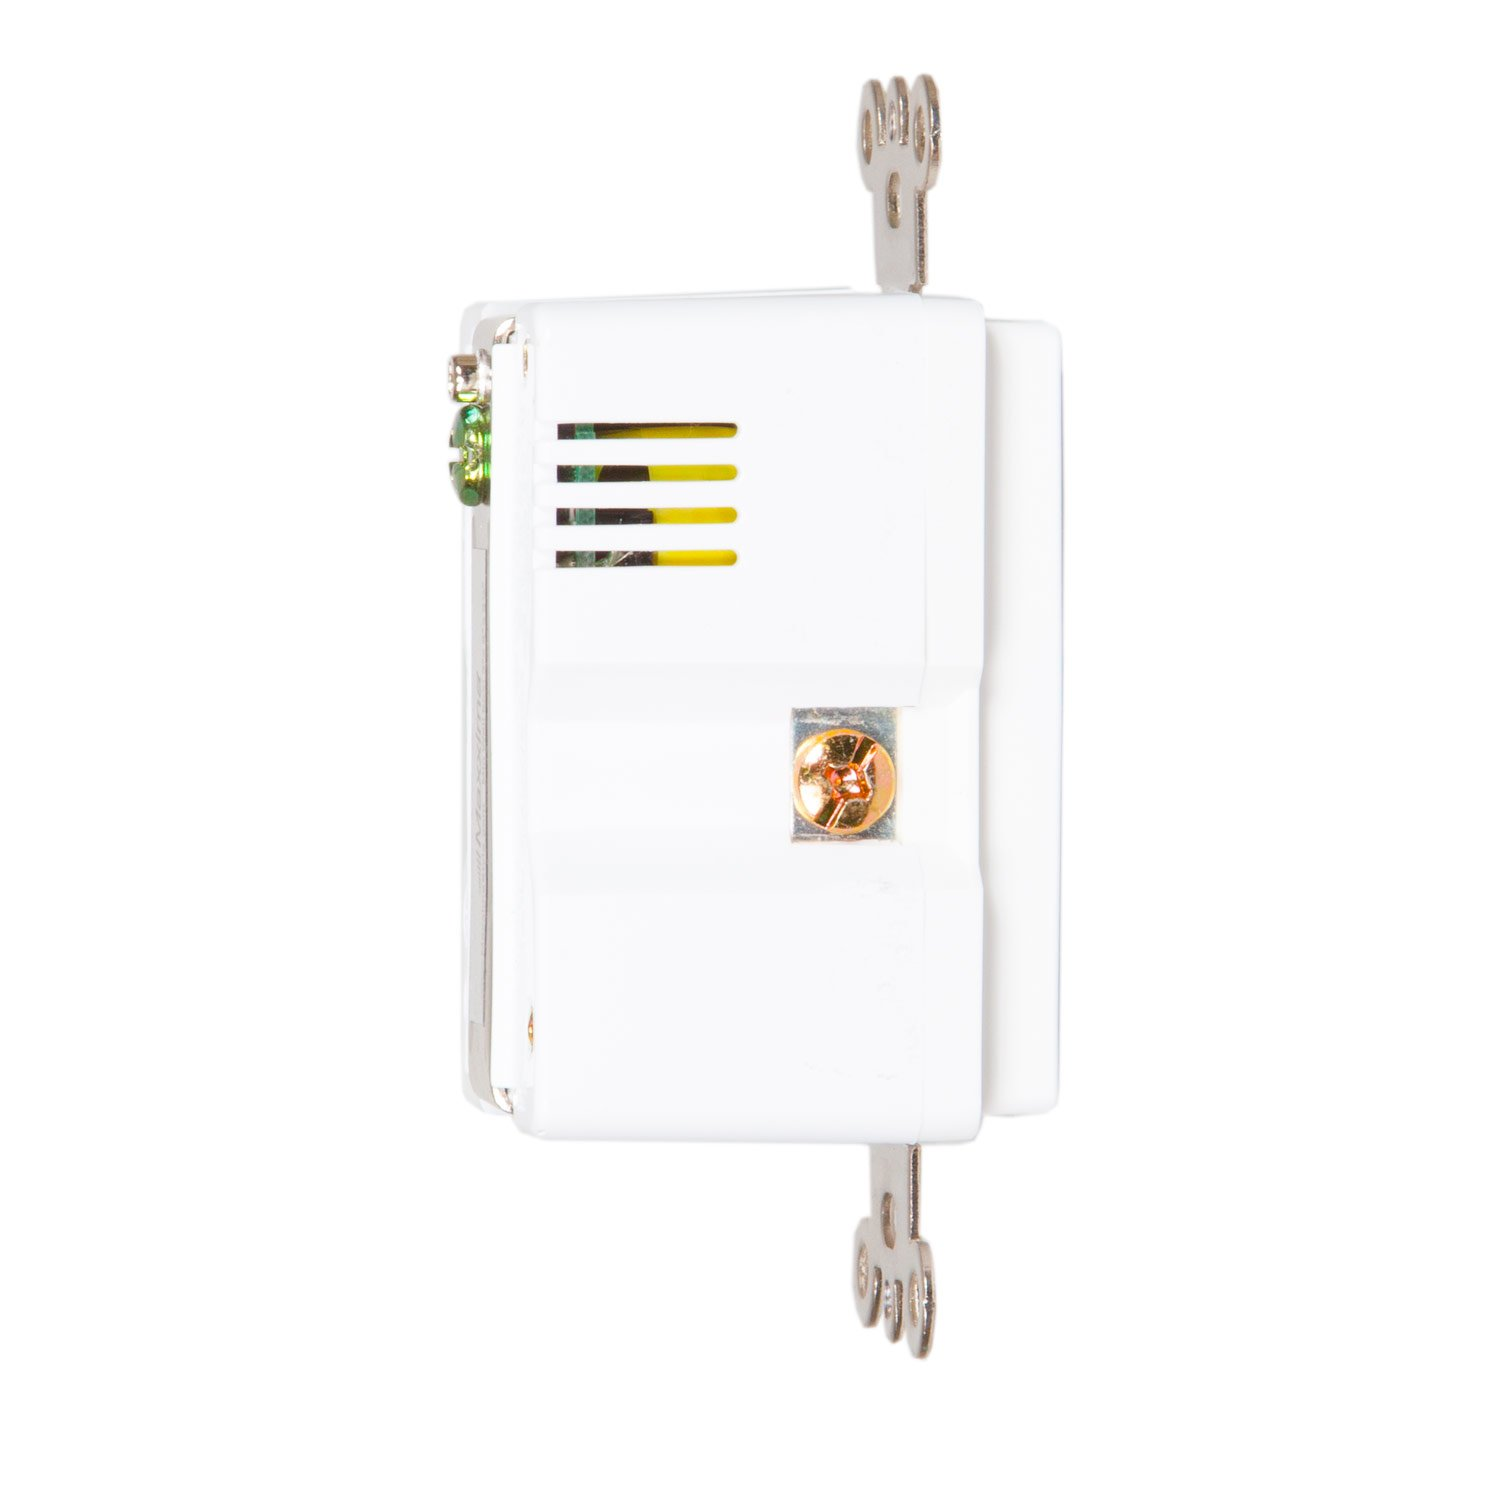 Screw-less Wall Plate Included MEW-USB310 Maxxima 3.1A High Speed Dual Horizontal USB Outlet Charger 15 Amp Duplex Receptacle Tamper Resistant